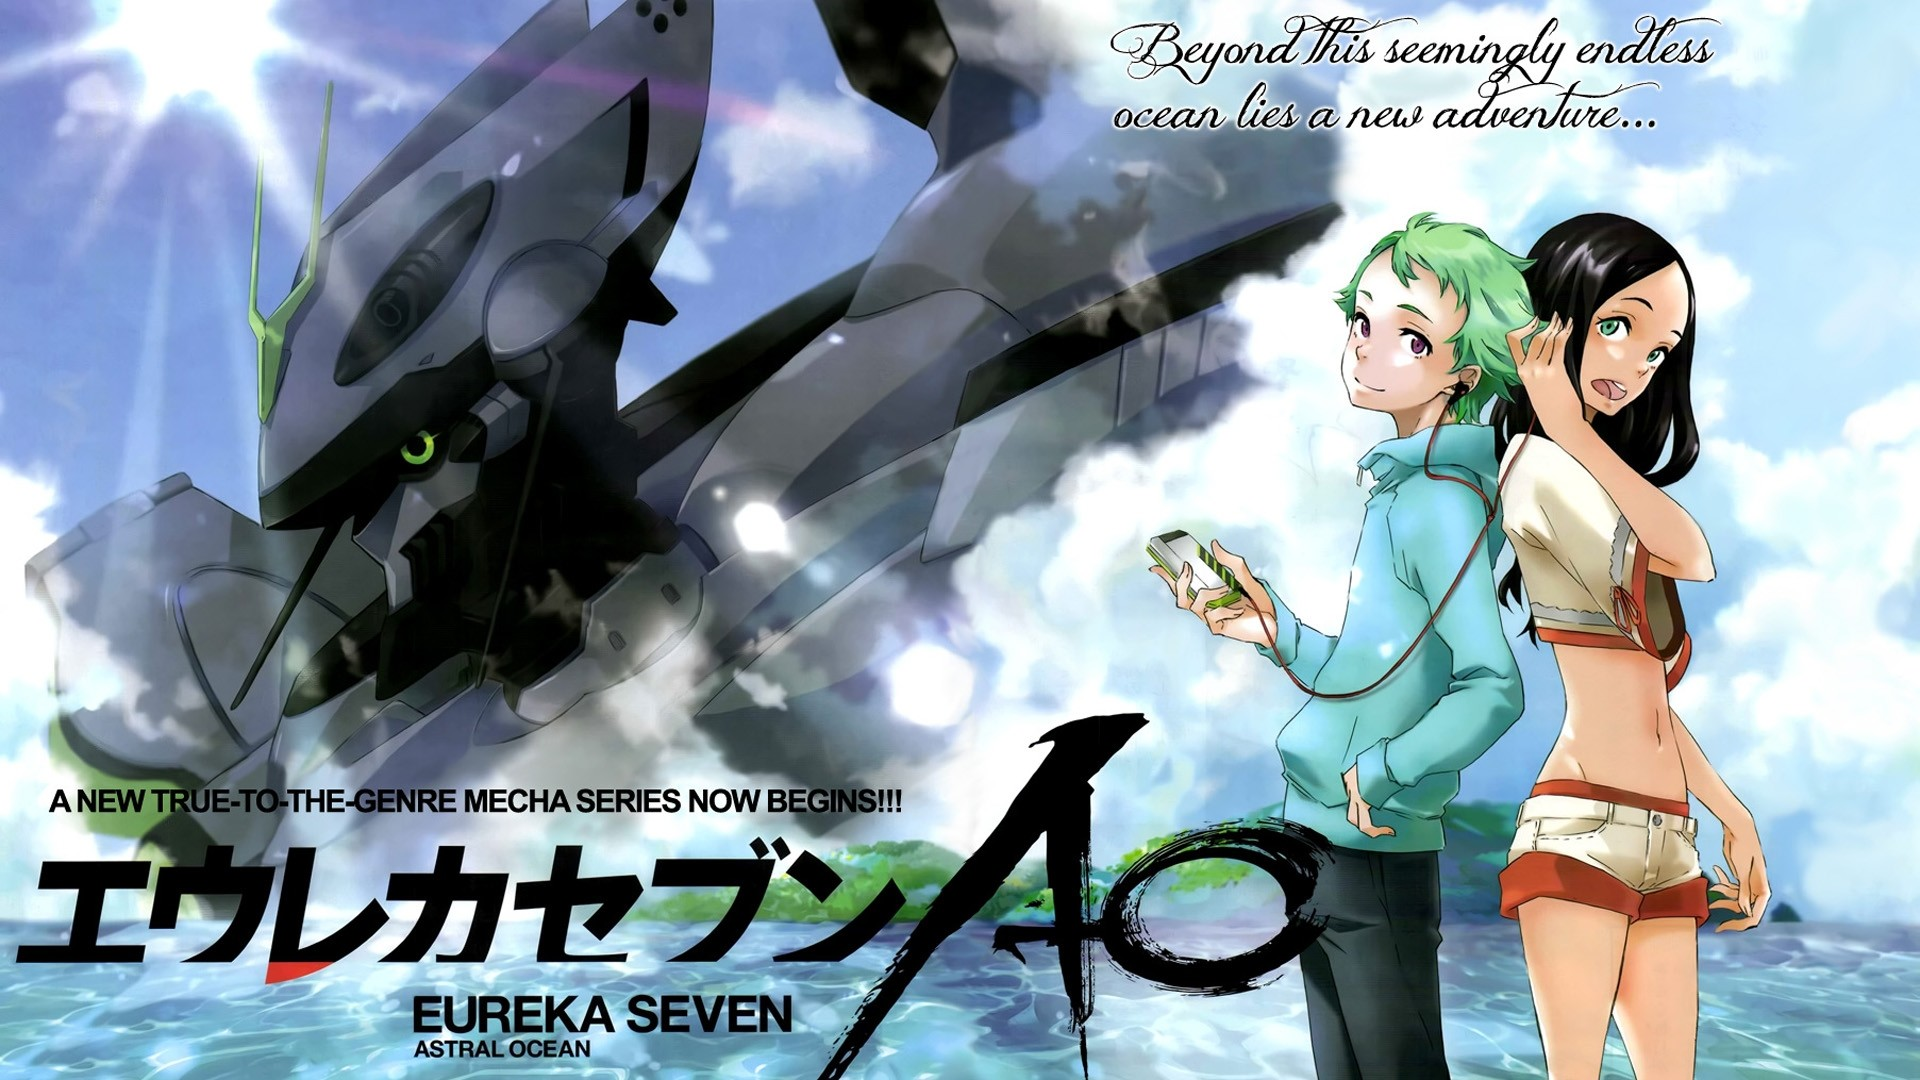 Res: 1920x1080, Eureka Seven Source: Keys: anime, eureka seven, television, wallpaper,  wallpapers. Submitted Anonymously 5 years ago